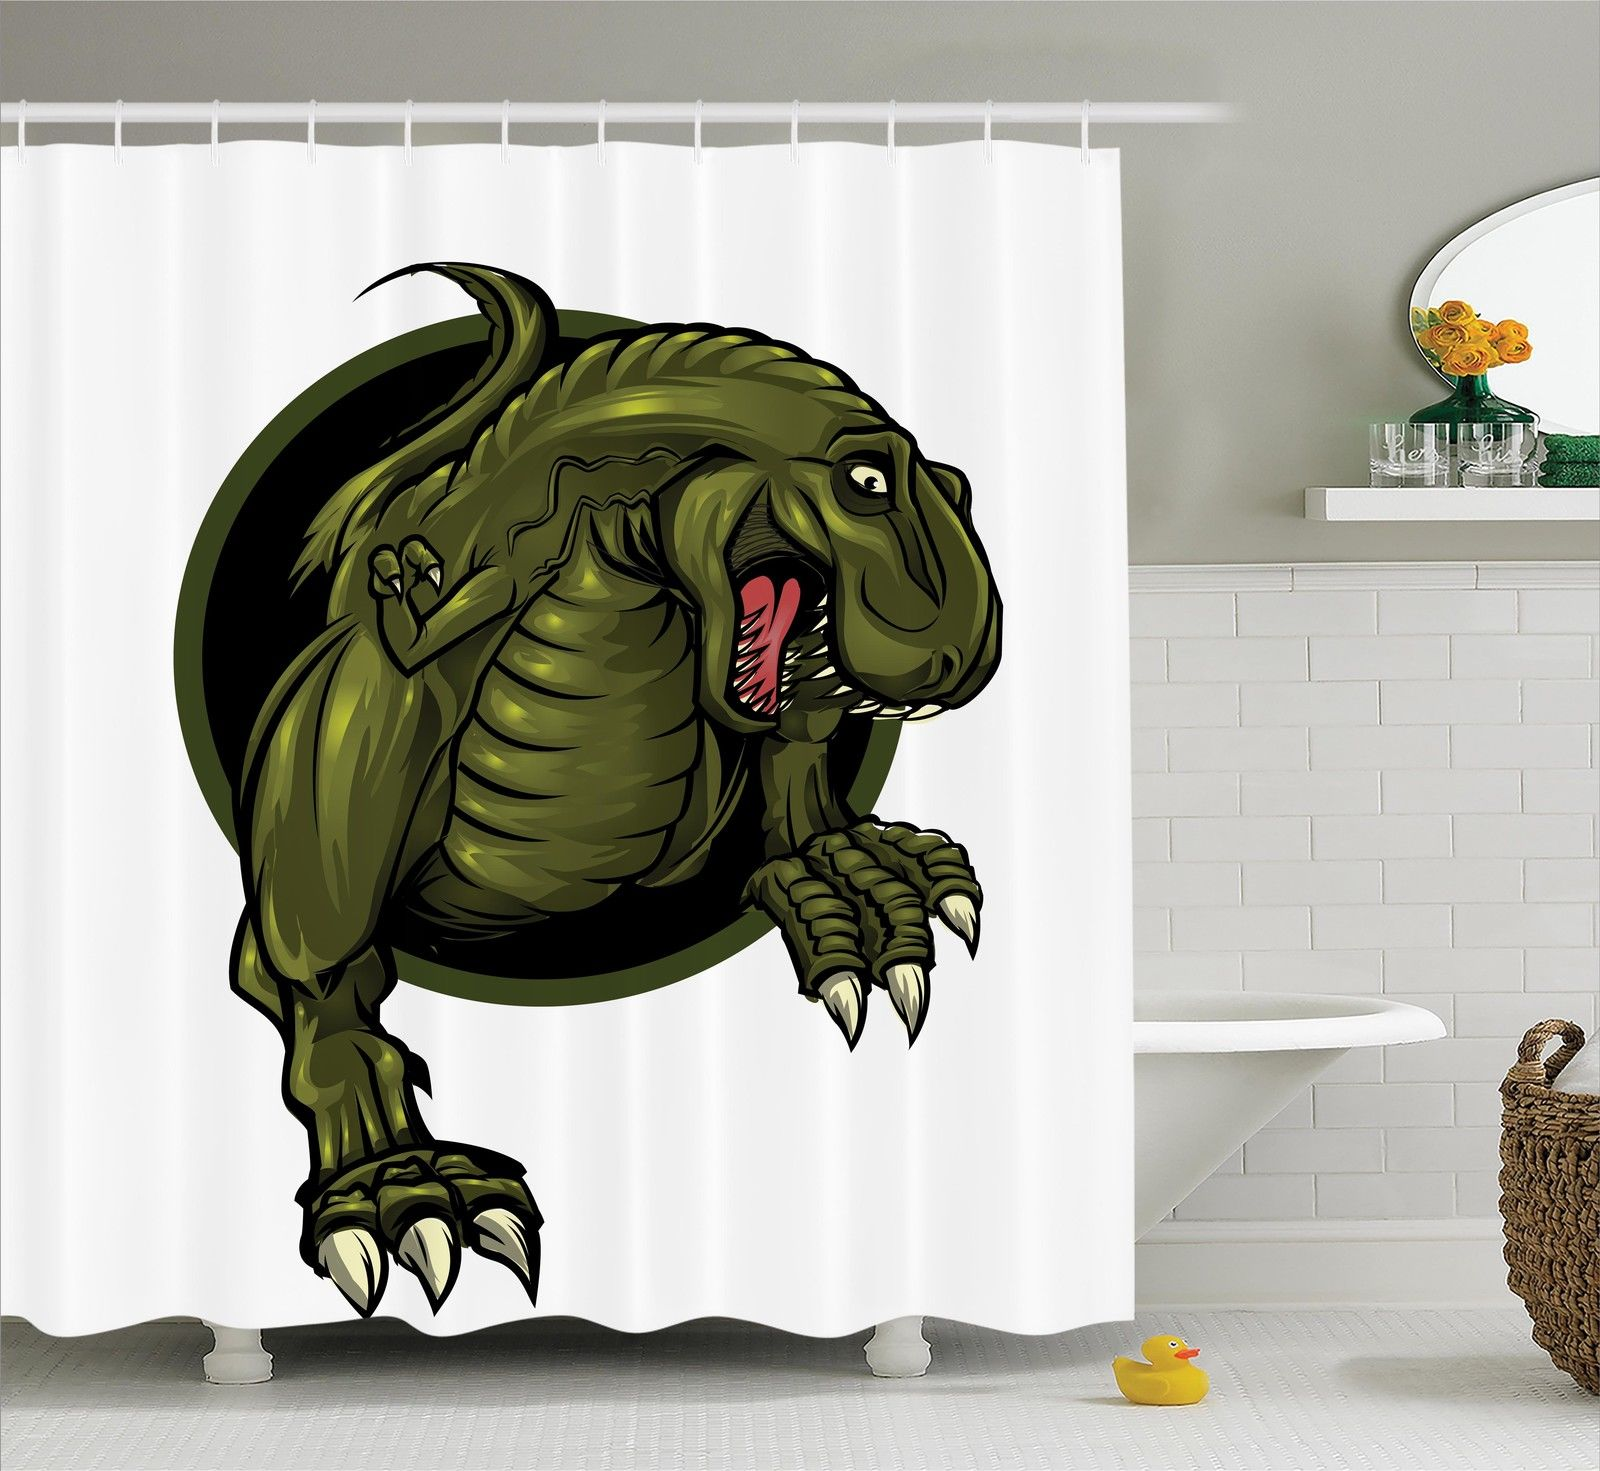 Jurassic Decor Shower Curtain Set, Roaring T-Rex Mascot Ancient Animal Teeth Horror Wildlife Wilderness Extinct, Bathroom Accessories, 69W X 70L Inches, By Ambesonne